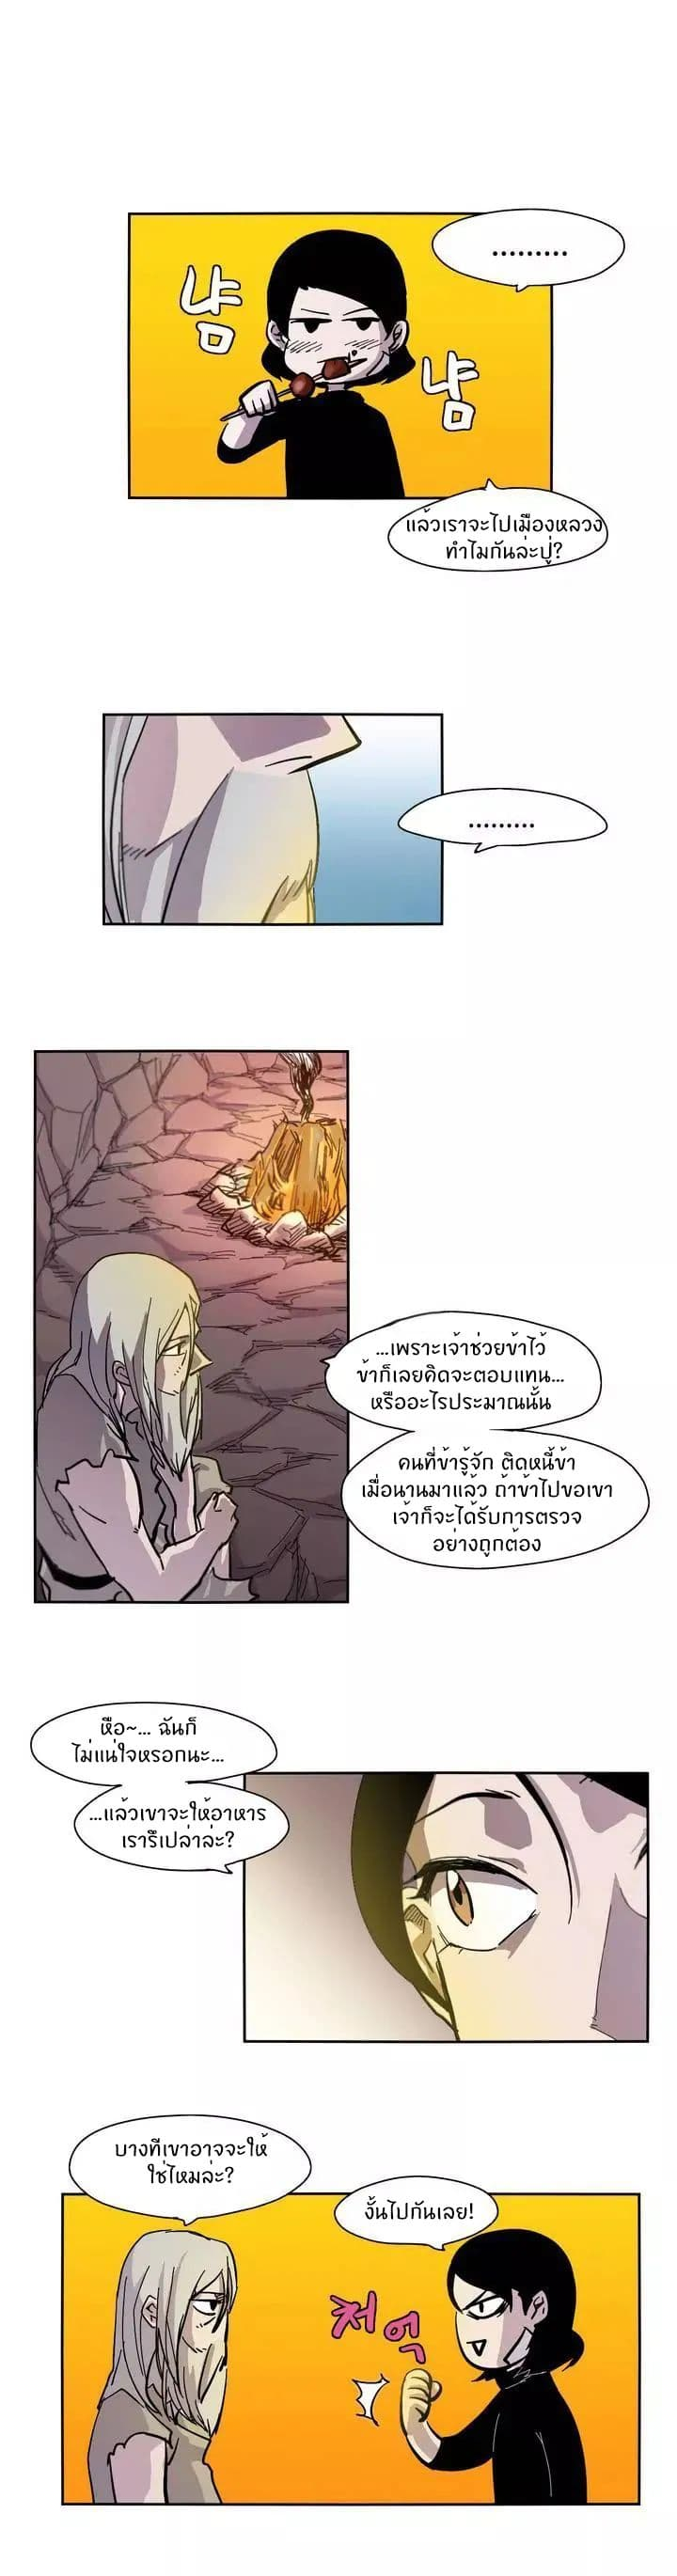 Epic of Gilgamesh - หน้า 6